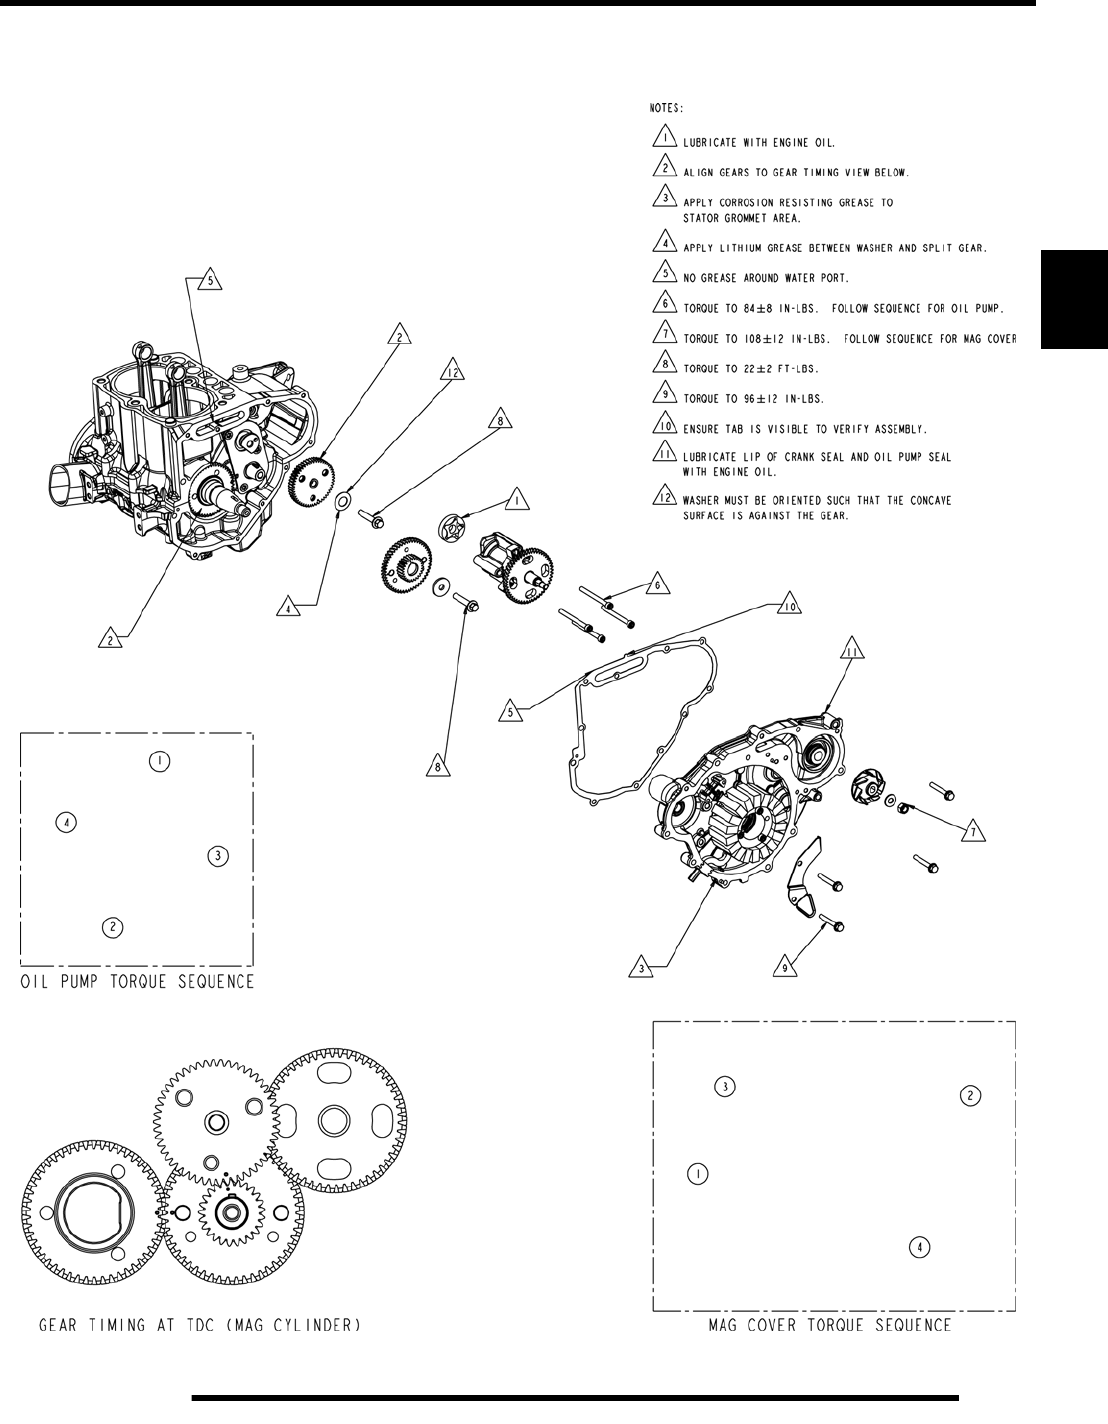 9921278_RZR_800 2008 Polaris RZR 800 Service Manual